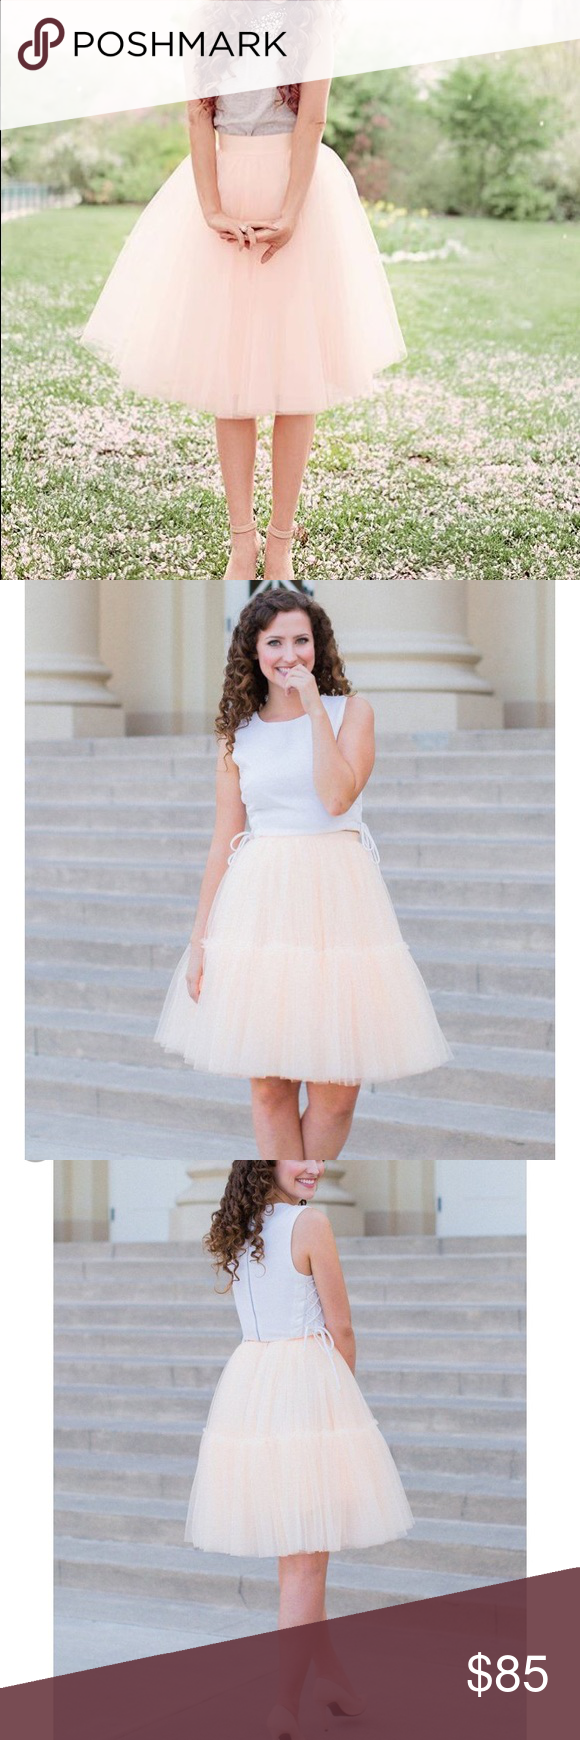 """0ab9757ee5 🆕✨The Skylar Tulle Skirt - Peach 🆕✨Space 46 Boutique The Skylar 22"""" peach tulle  Skirt. Waist 25"""". Worn once perfect condition Space 46 Boutique Skirts ..."""